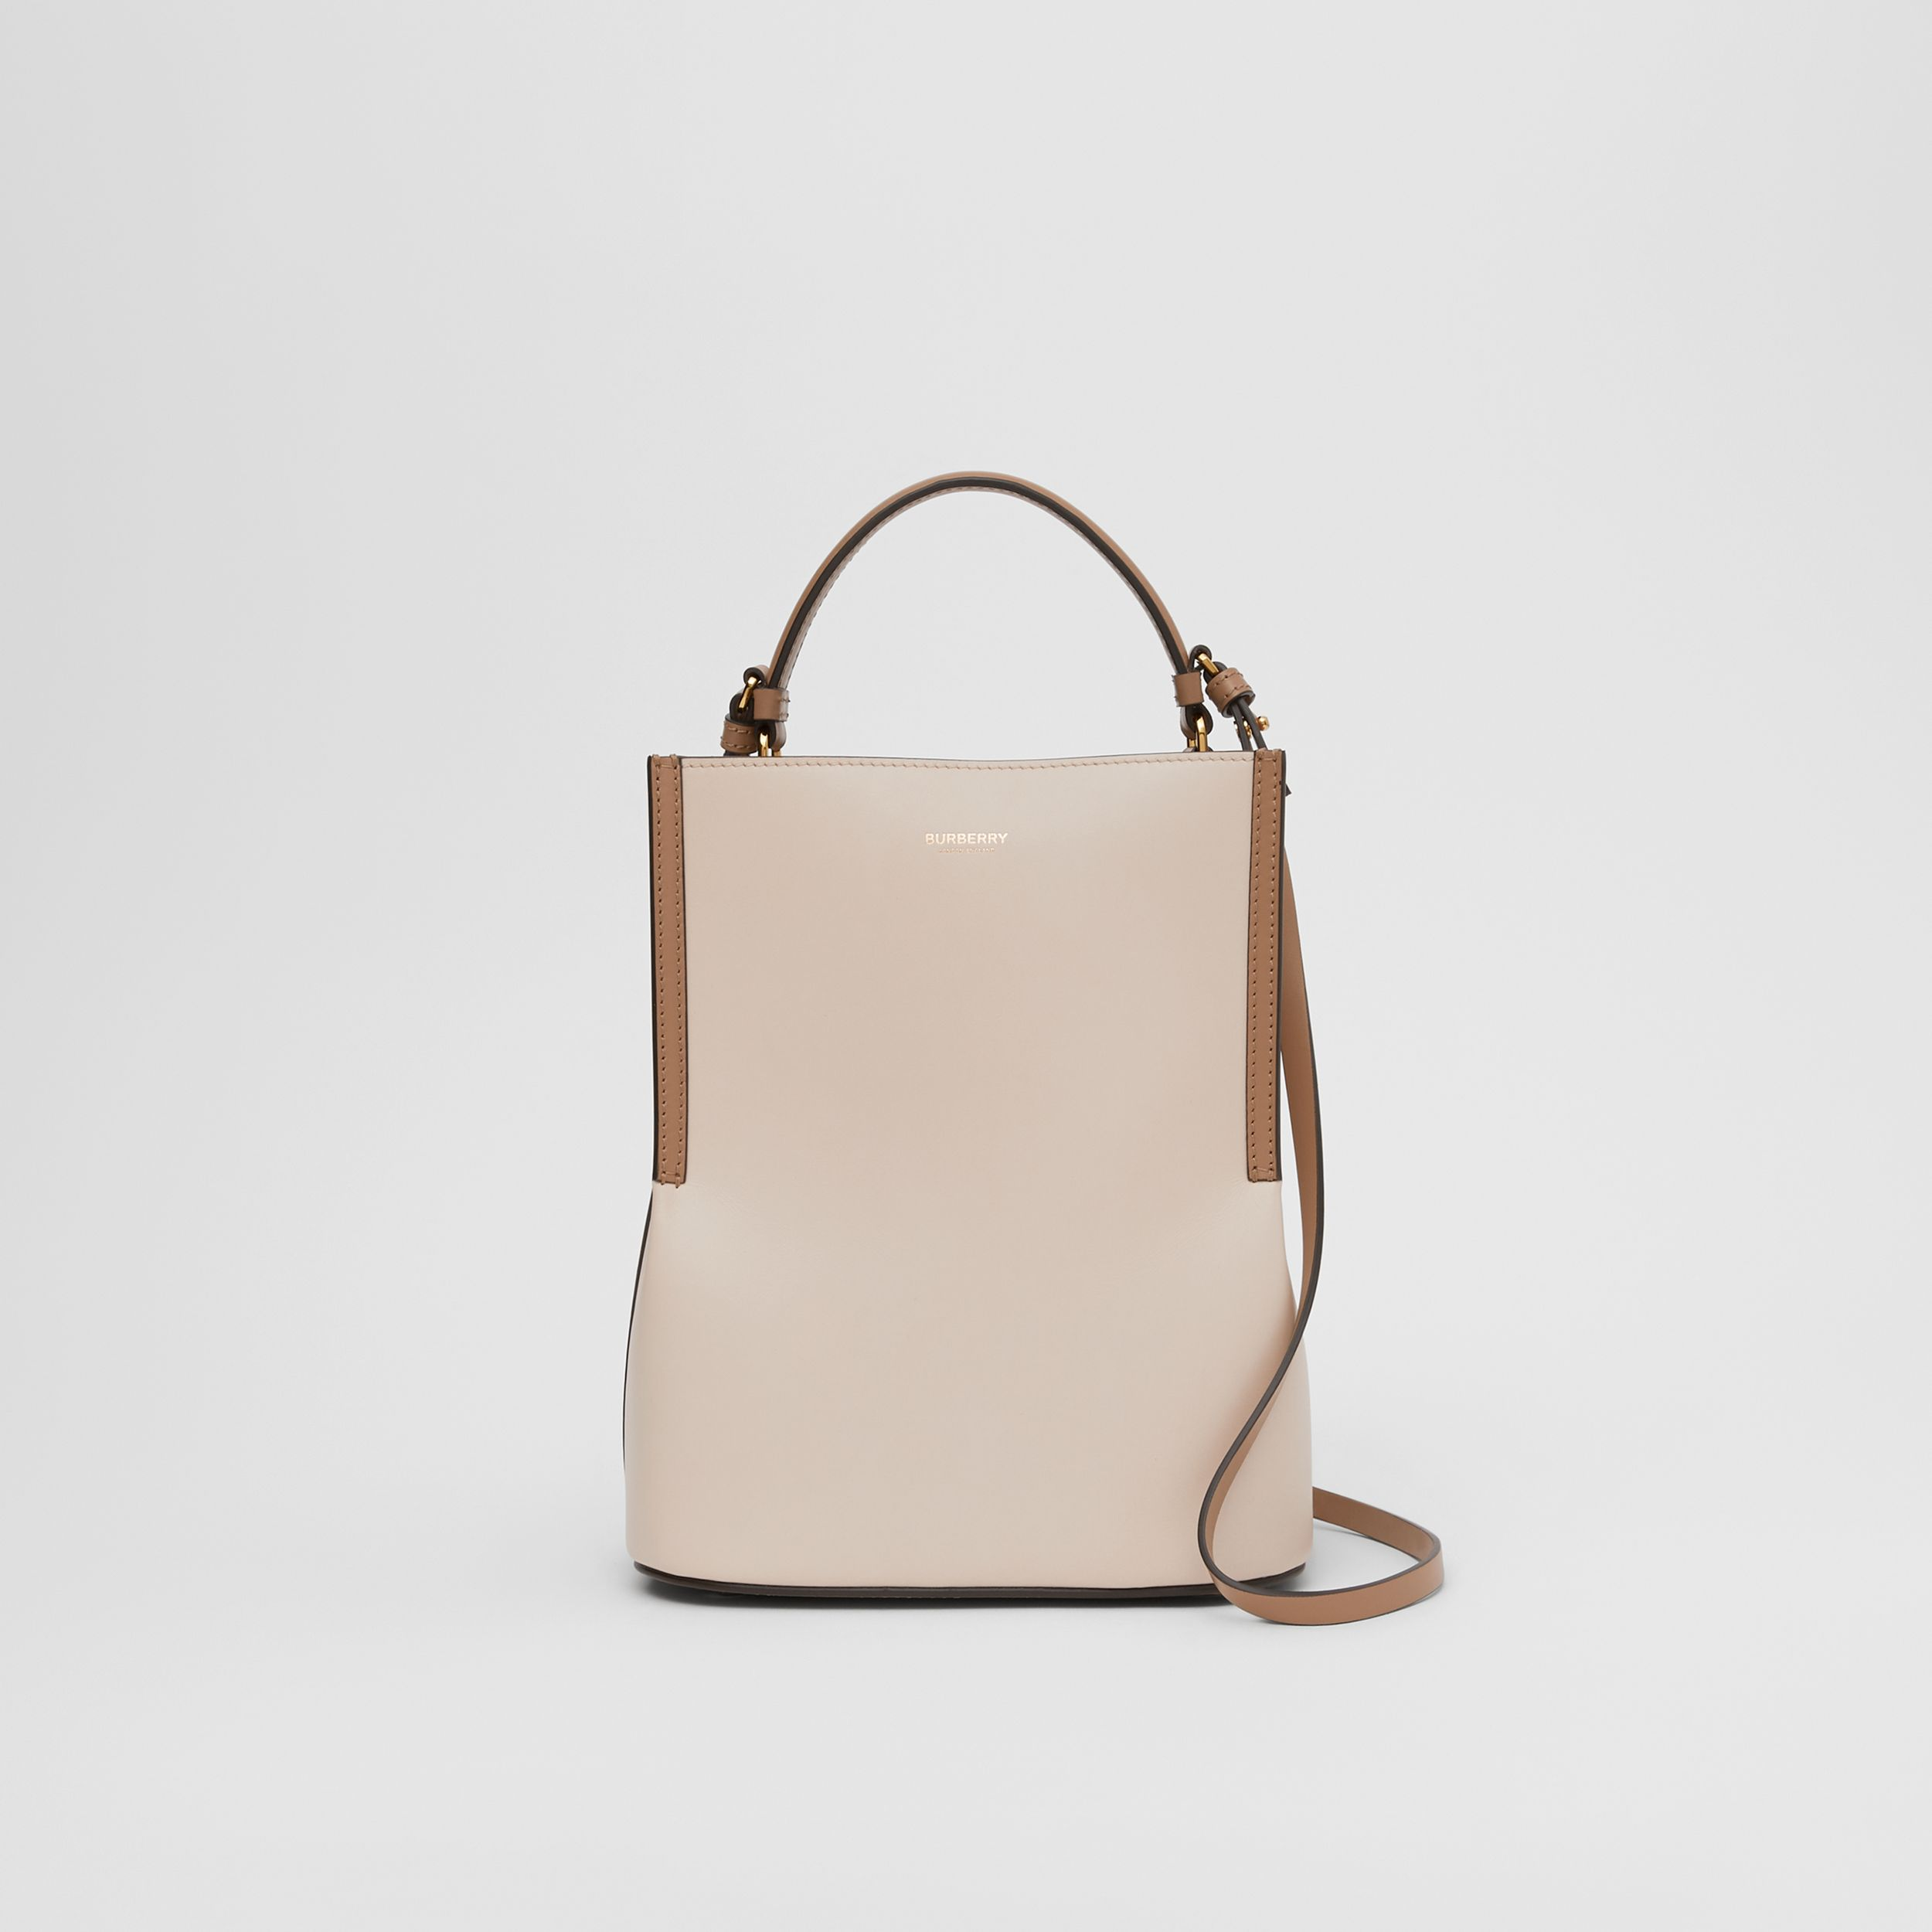 Small Two-tone Leather Peggy Bucket Bag in Buttermilk - Women | Burberry - 1